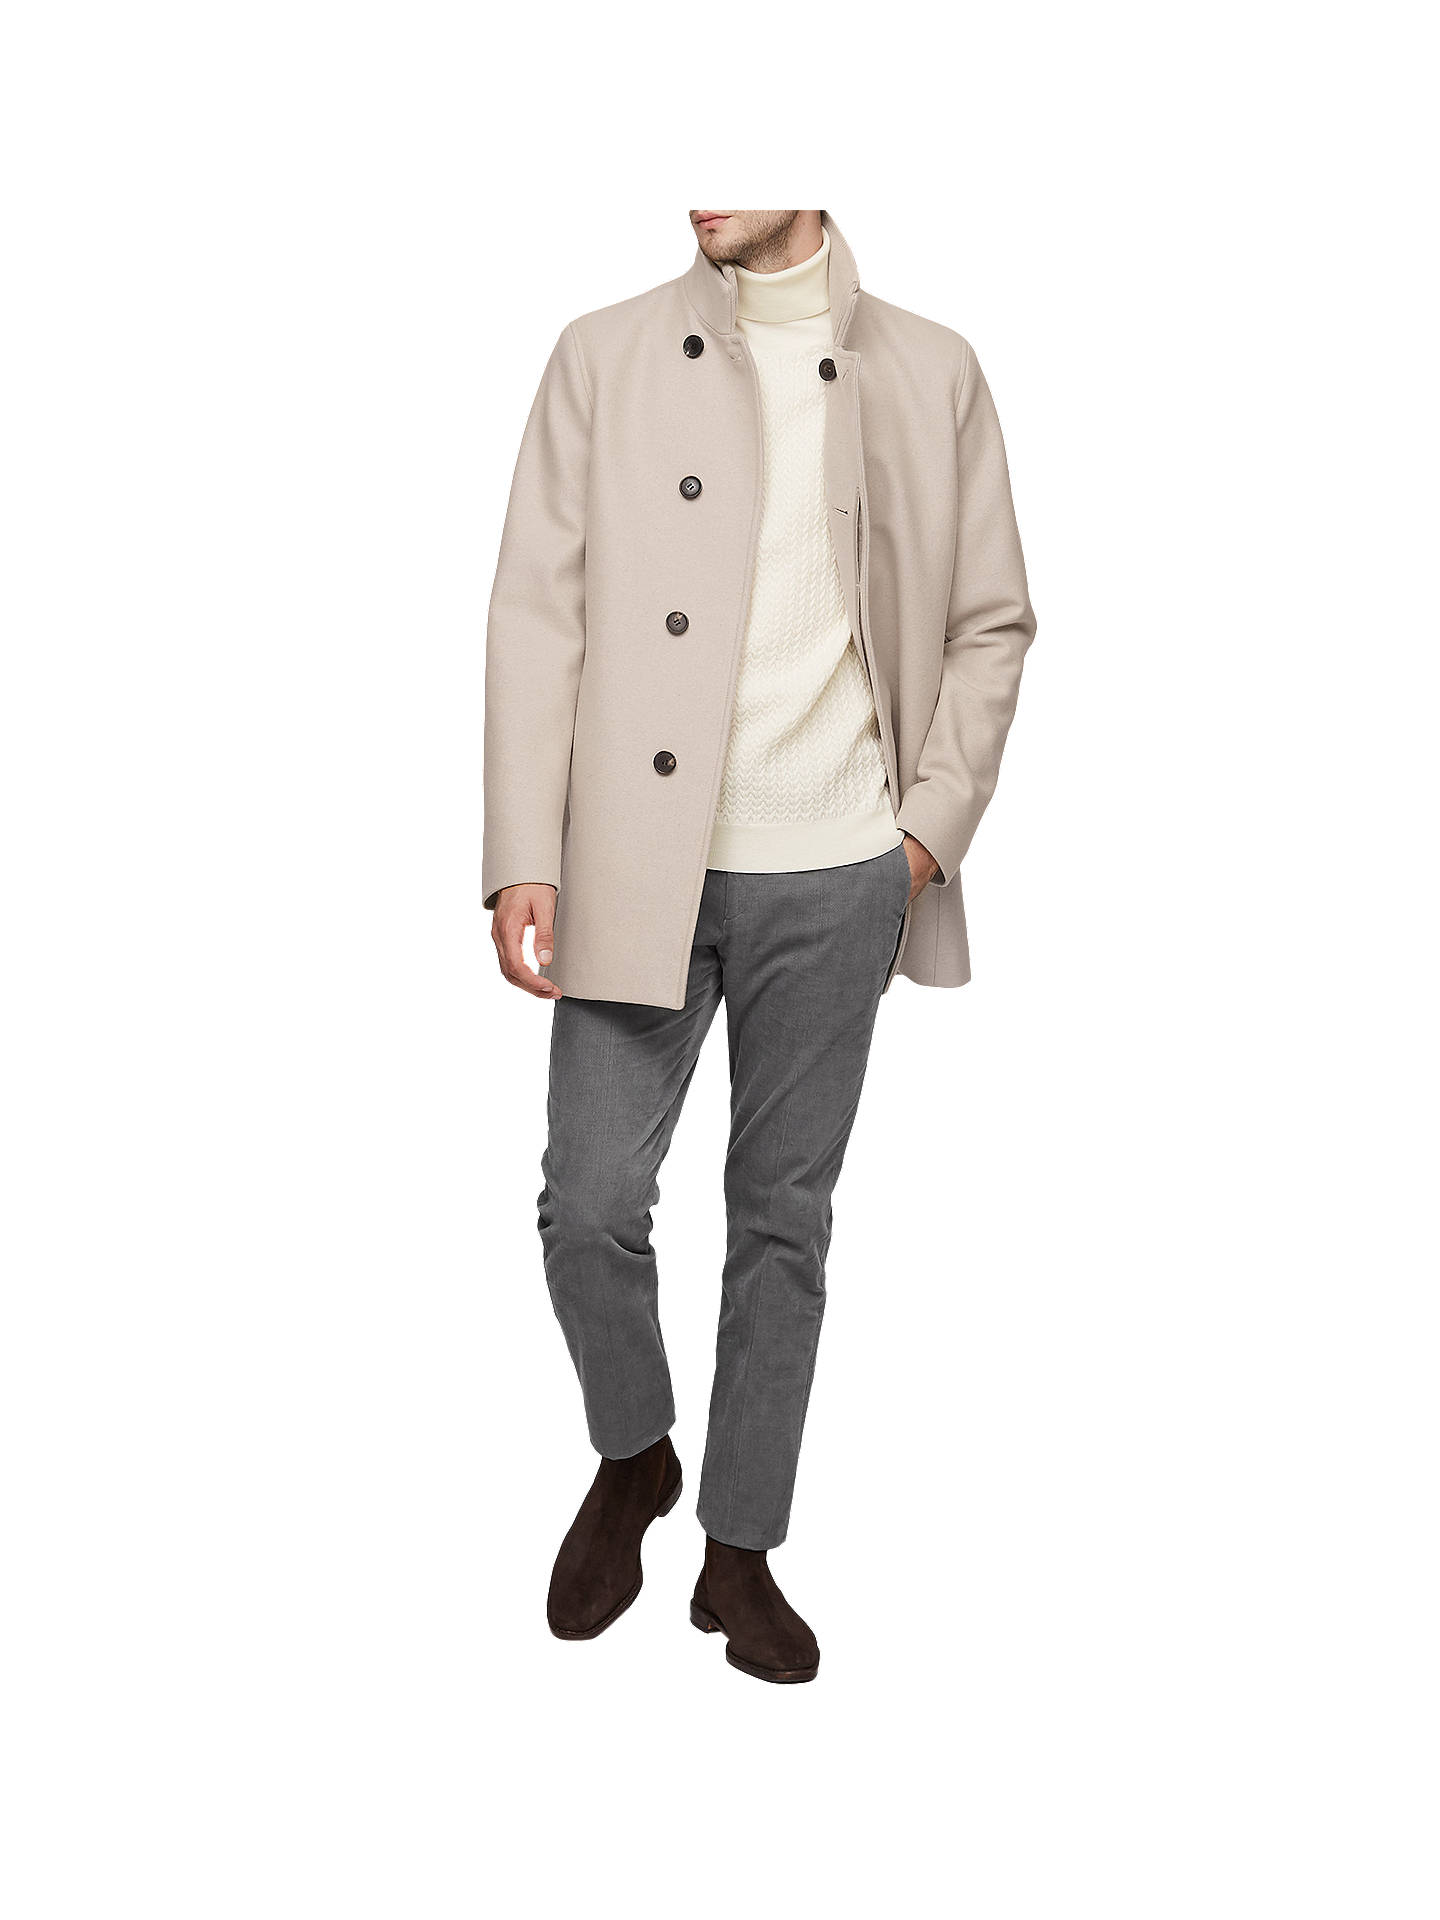 BuyReiss Curraghmore Funnel Collar Jacket, Oatmeal, XS Online at johnlewis.com